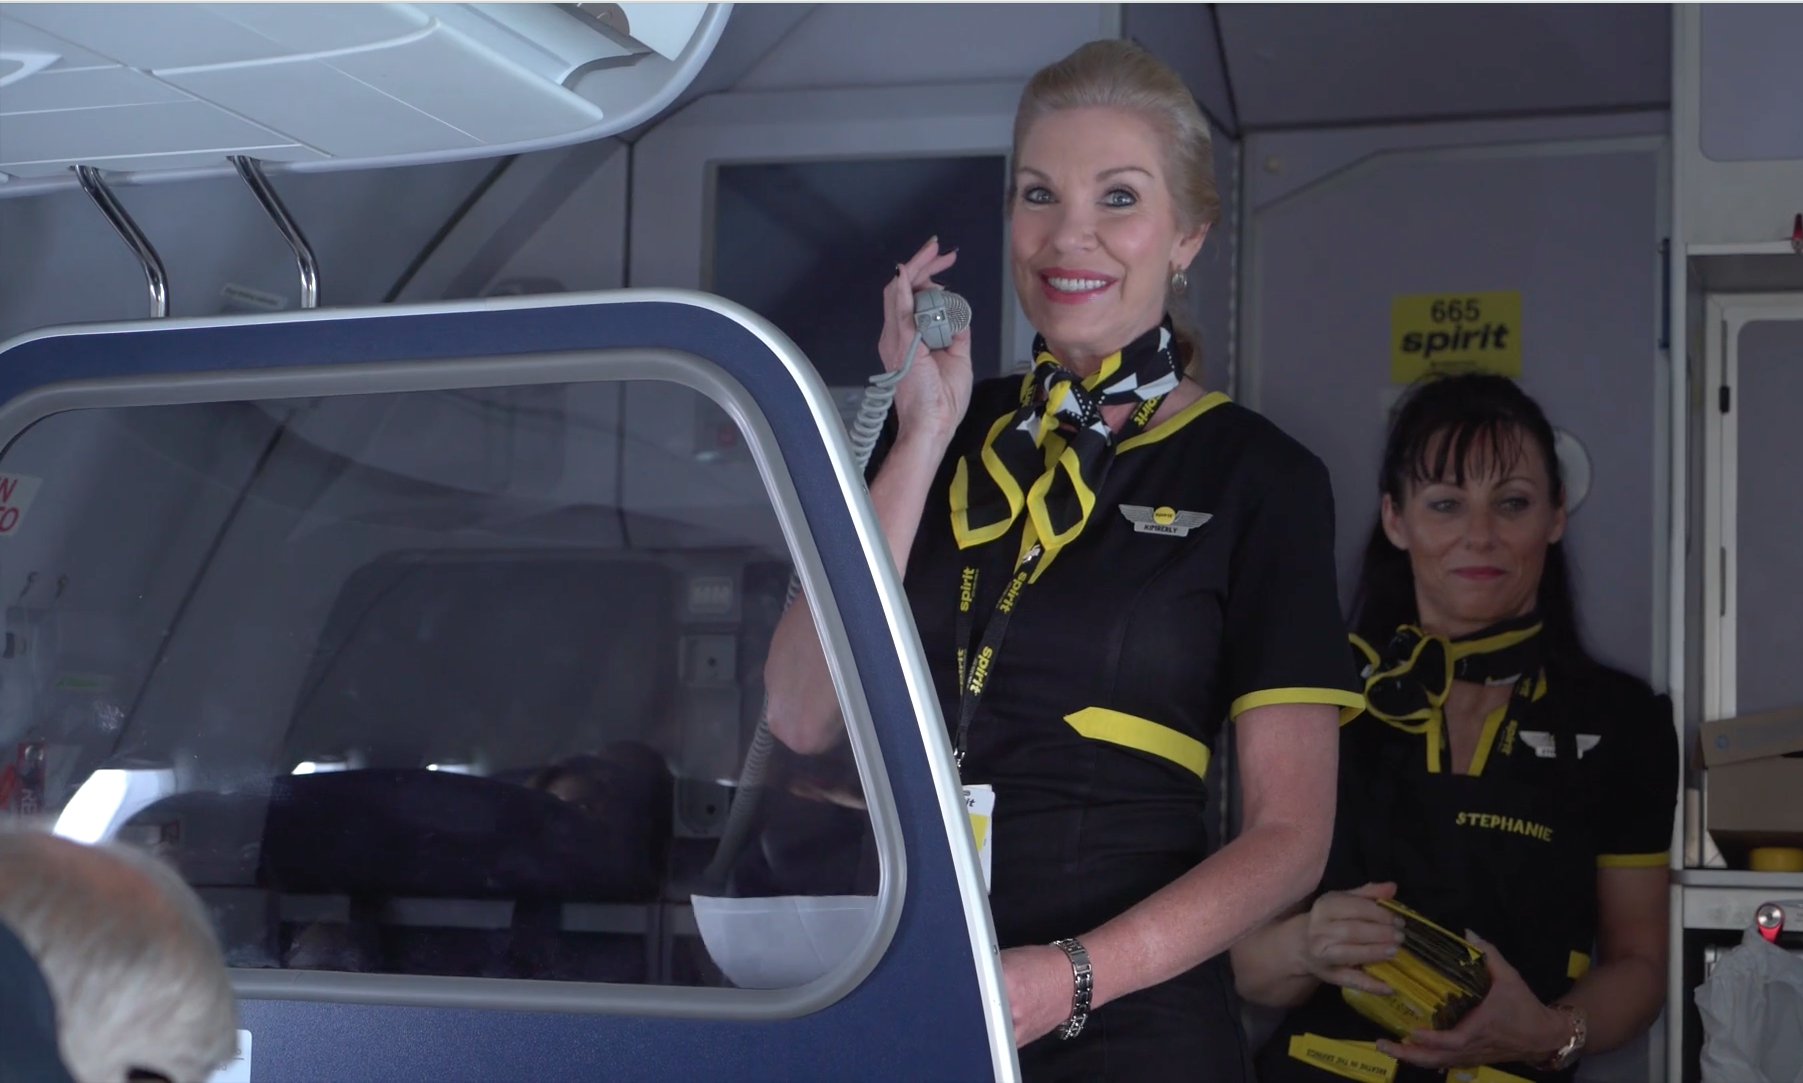 Spirit Airlines Flight Attendants